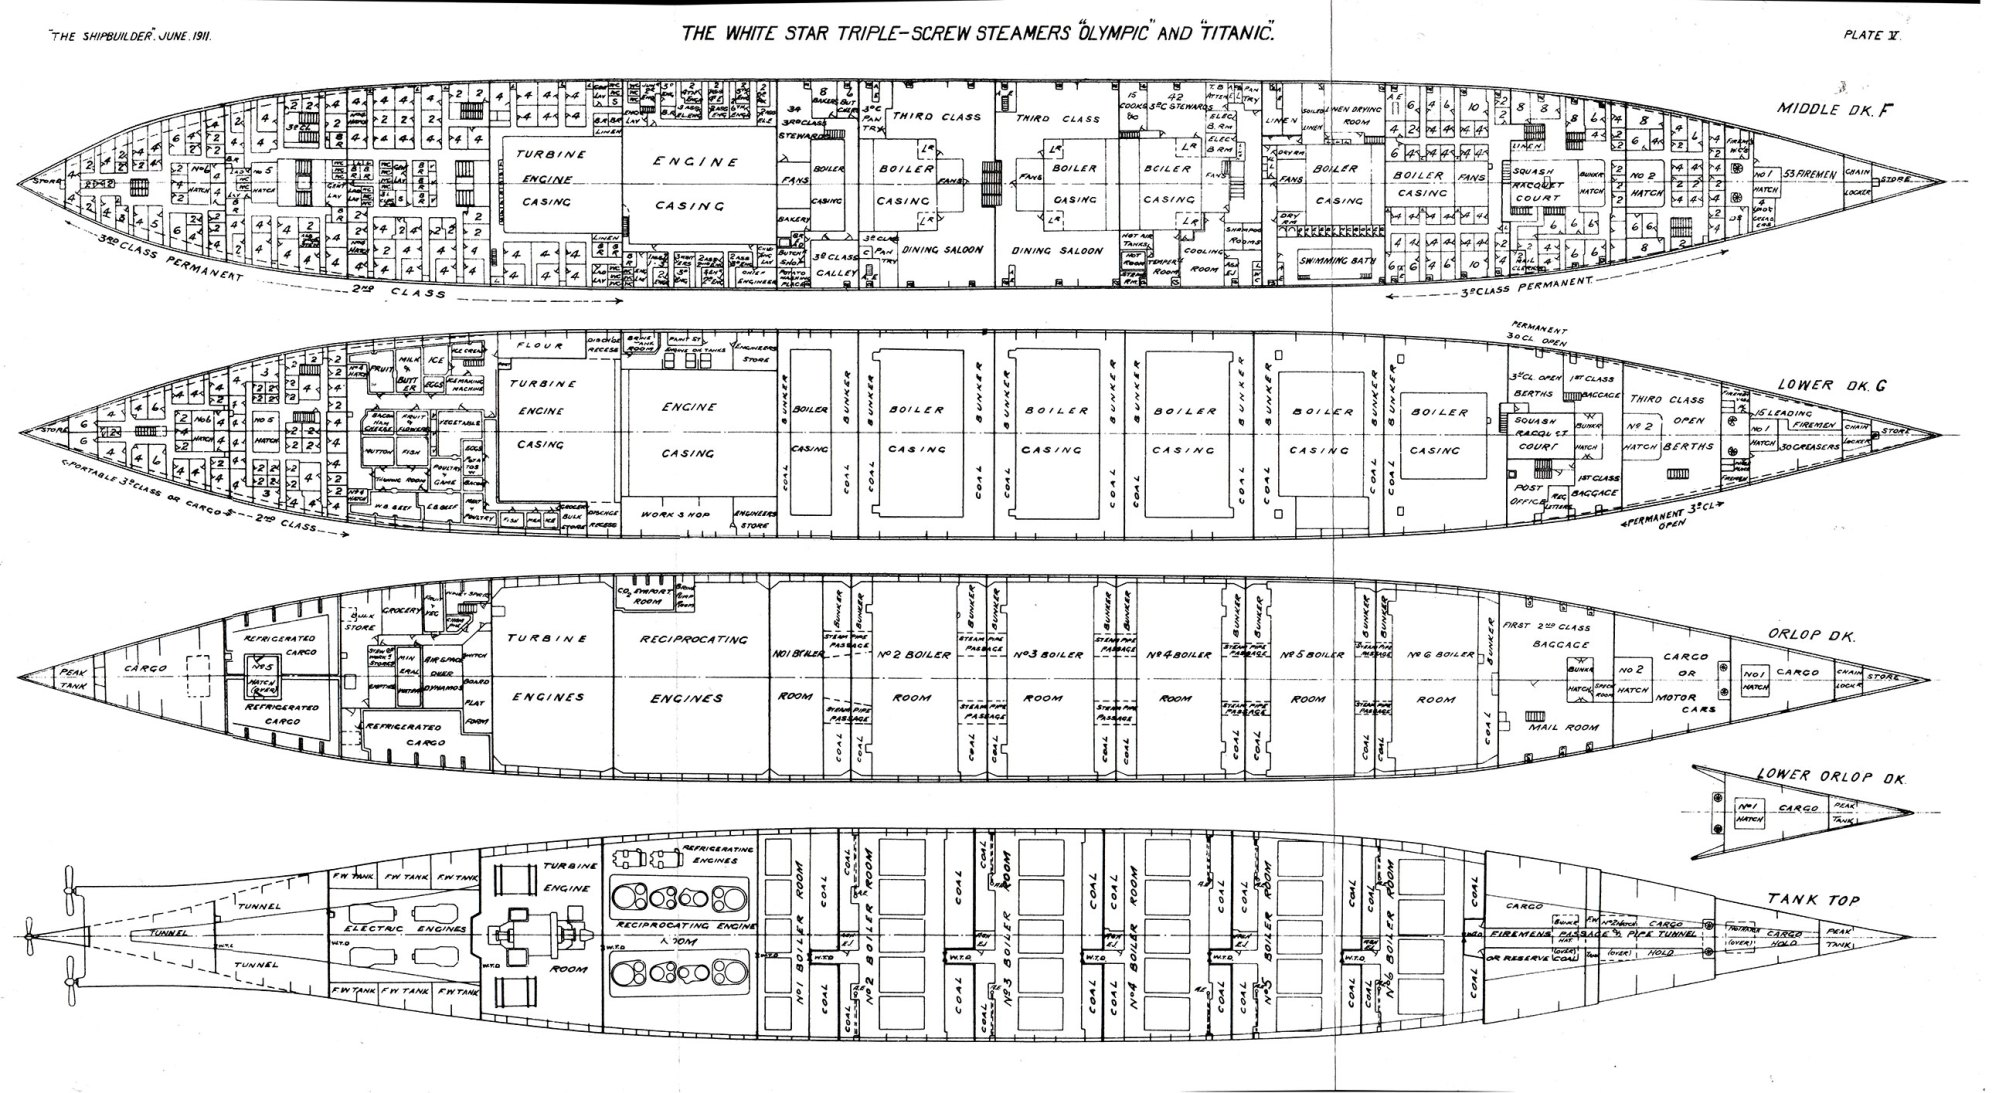 hight resolution of plate 5 deck plans middle deck f lower deck g orlop deck